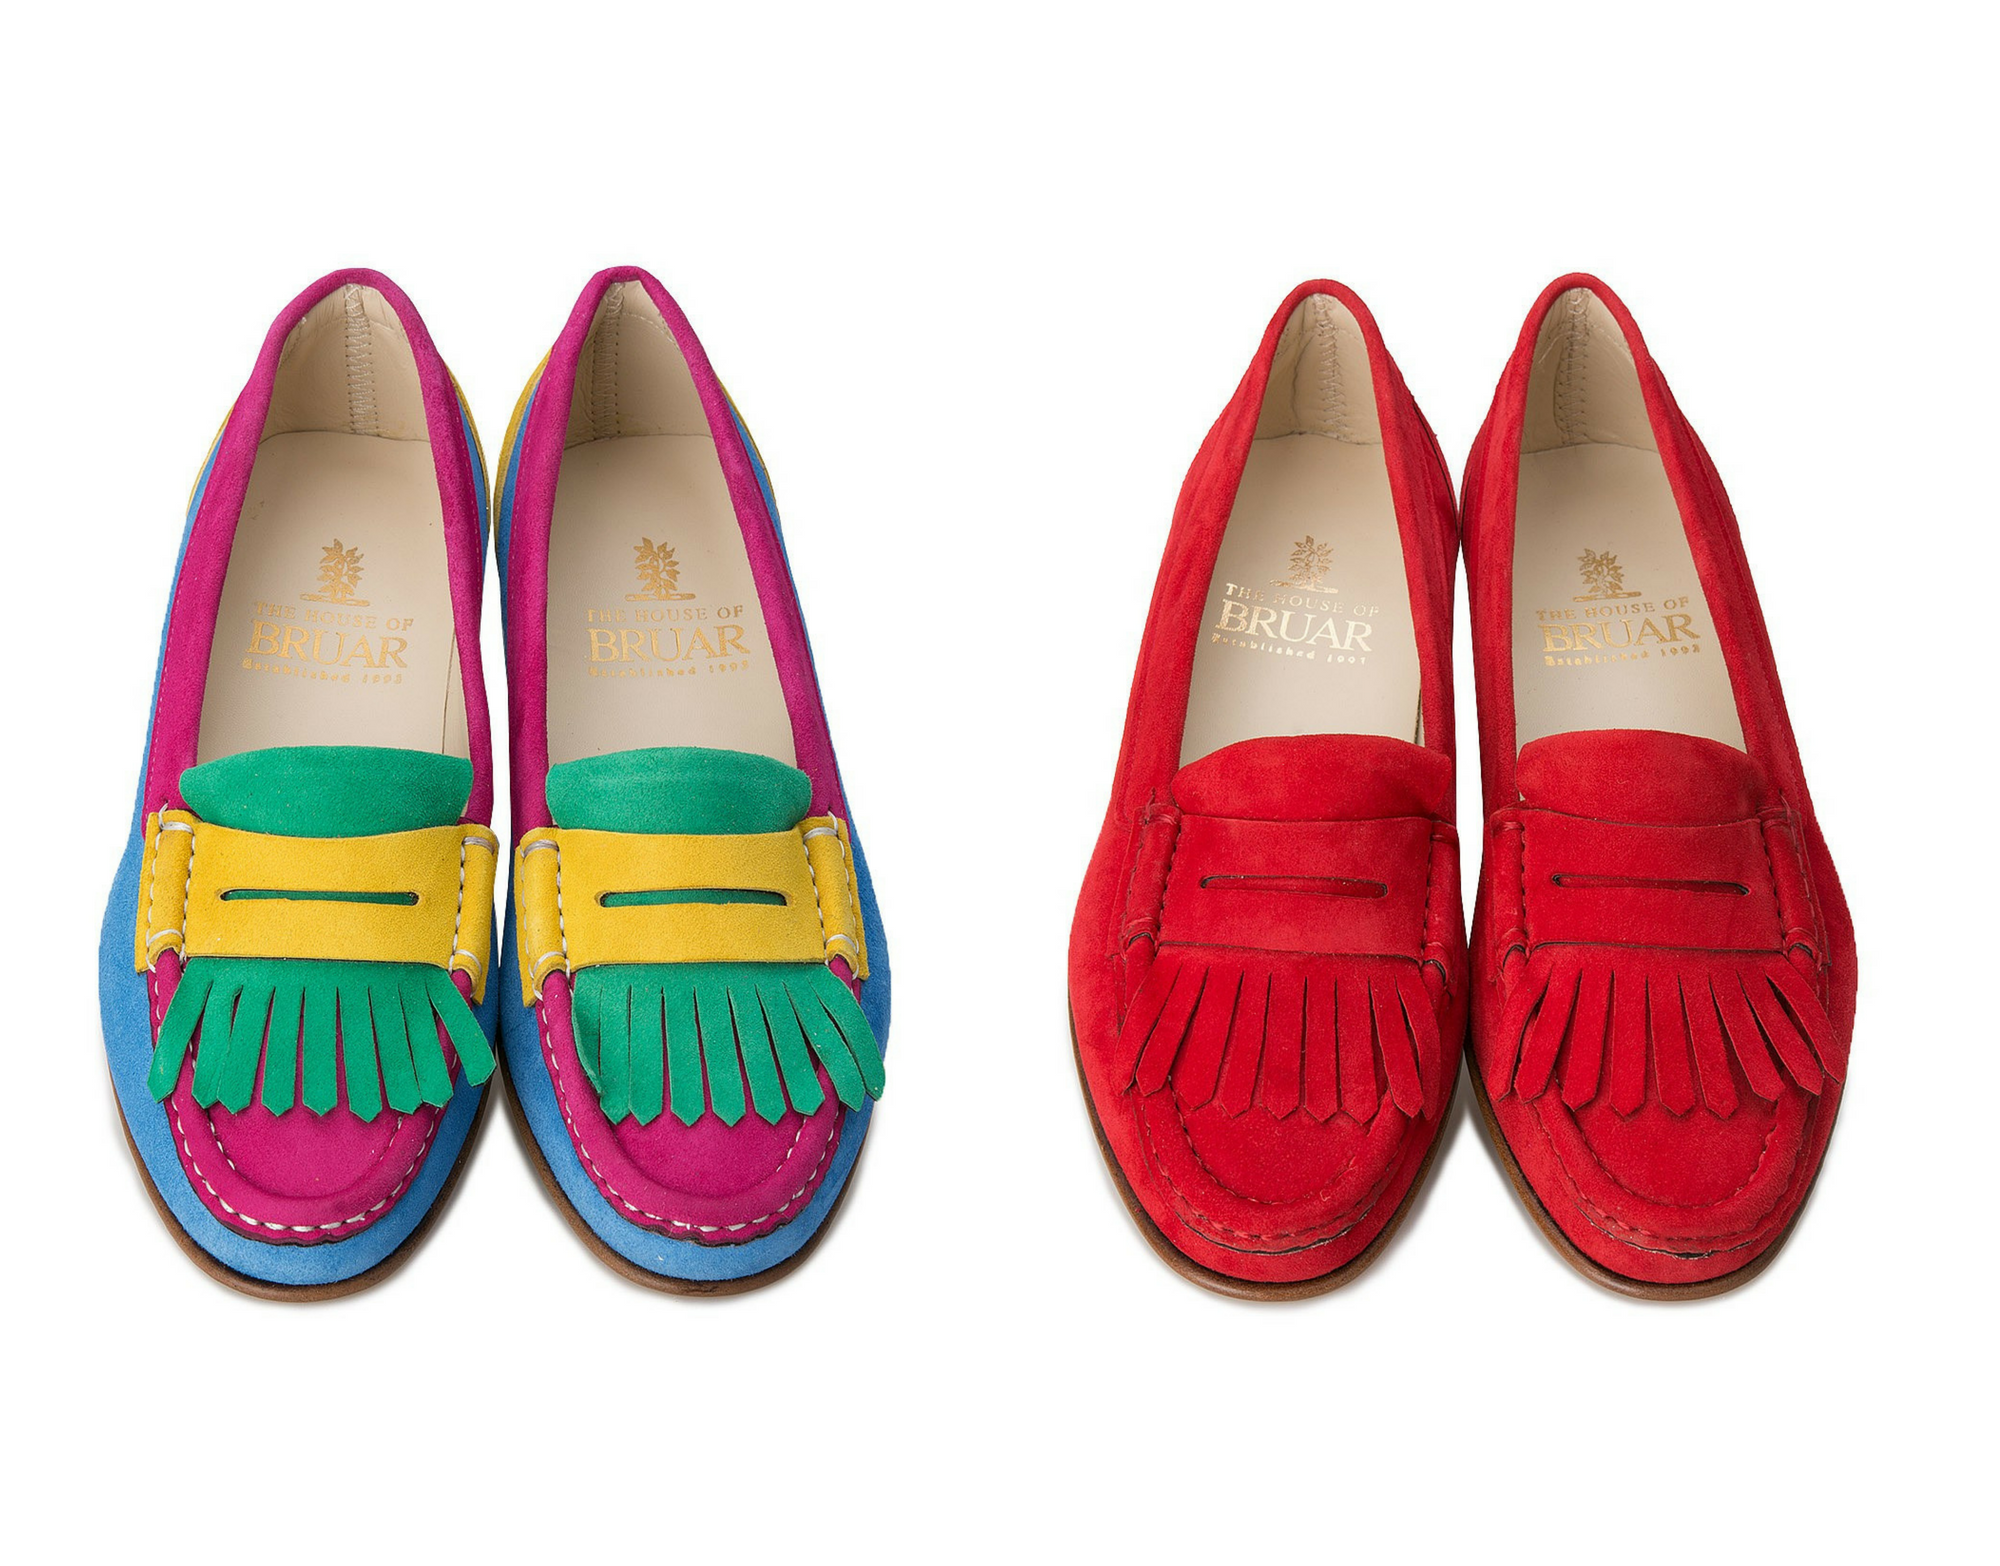 House of Bruar Bright tassle loafers suede